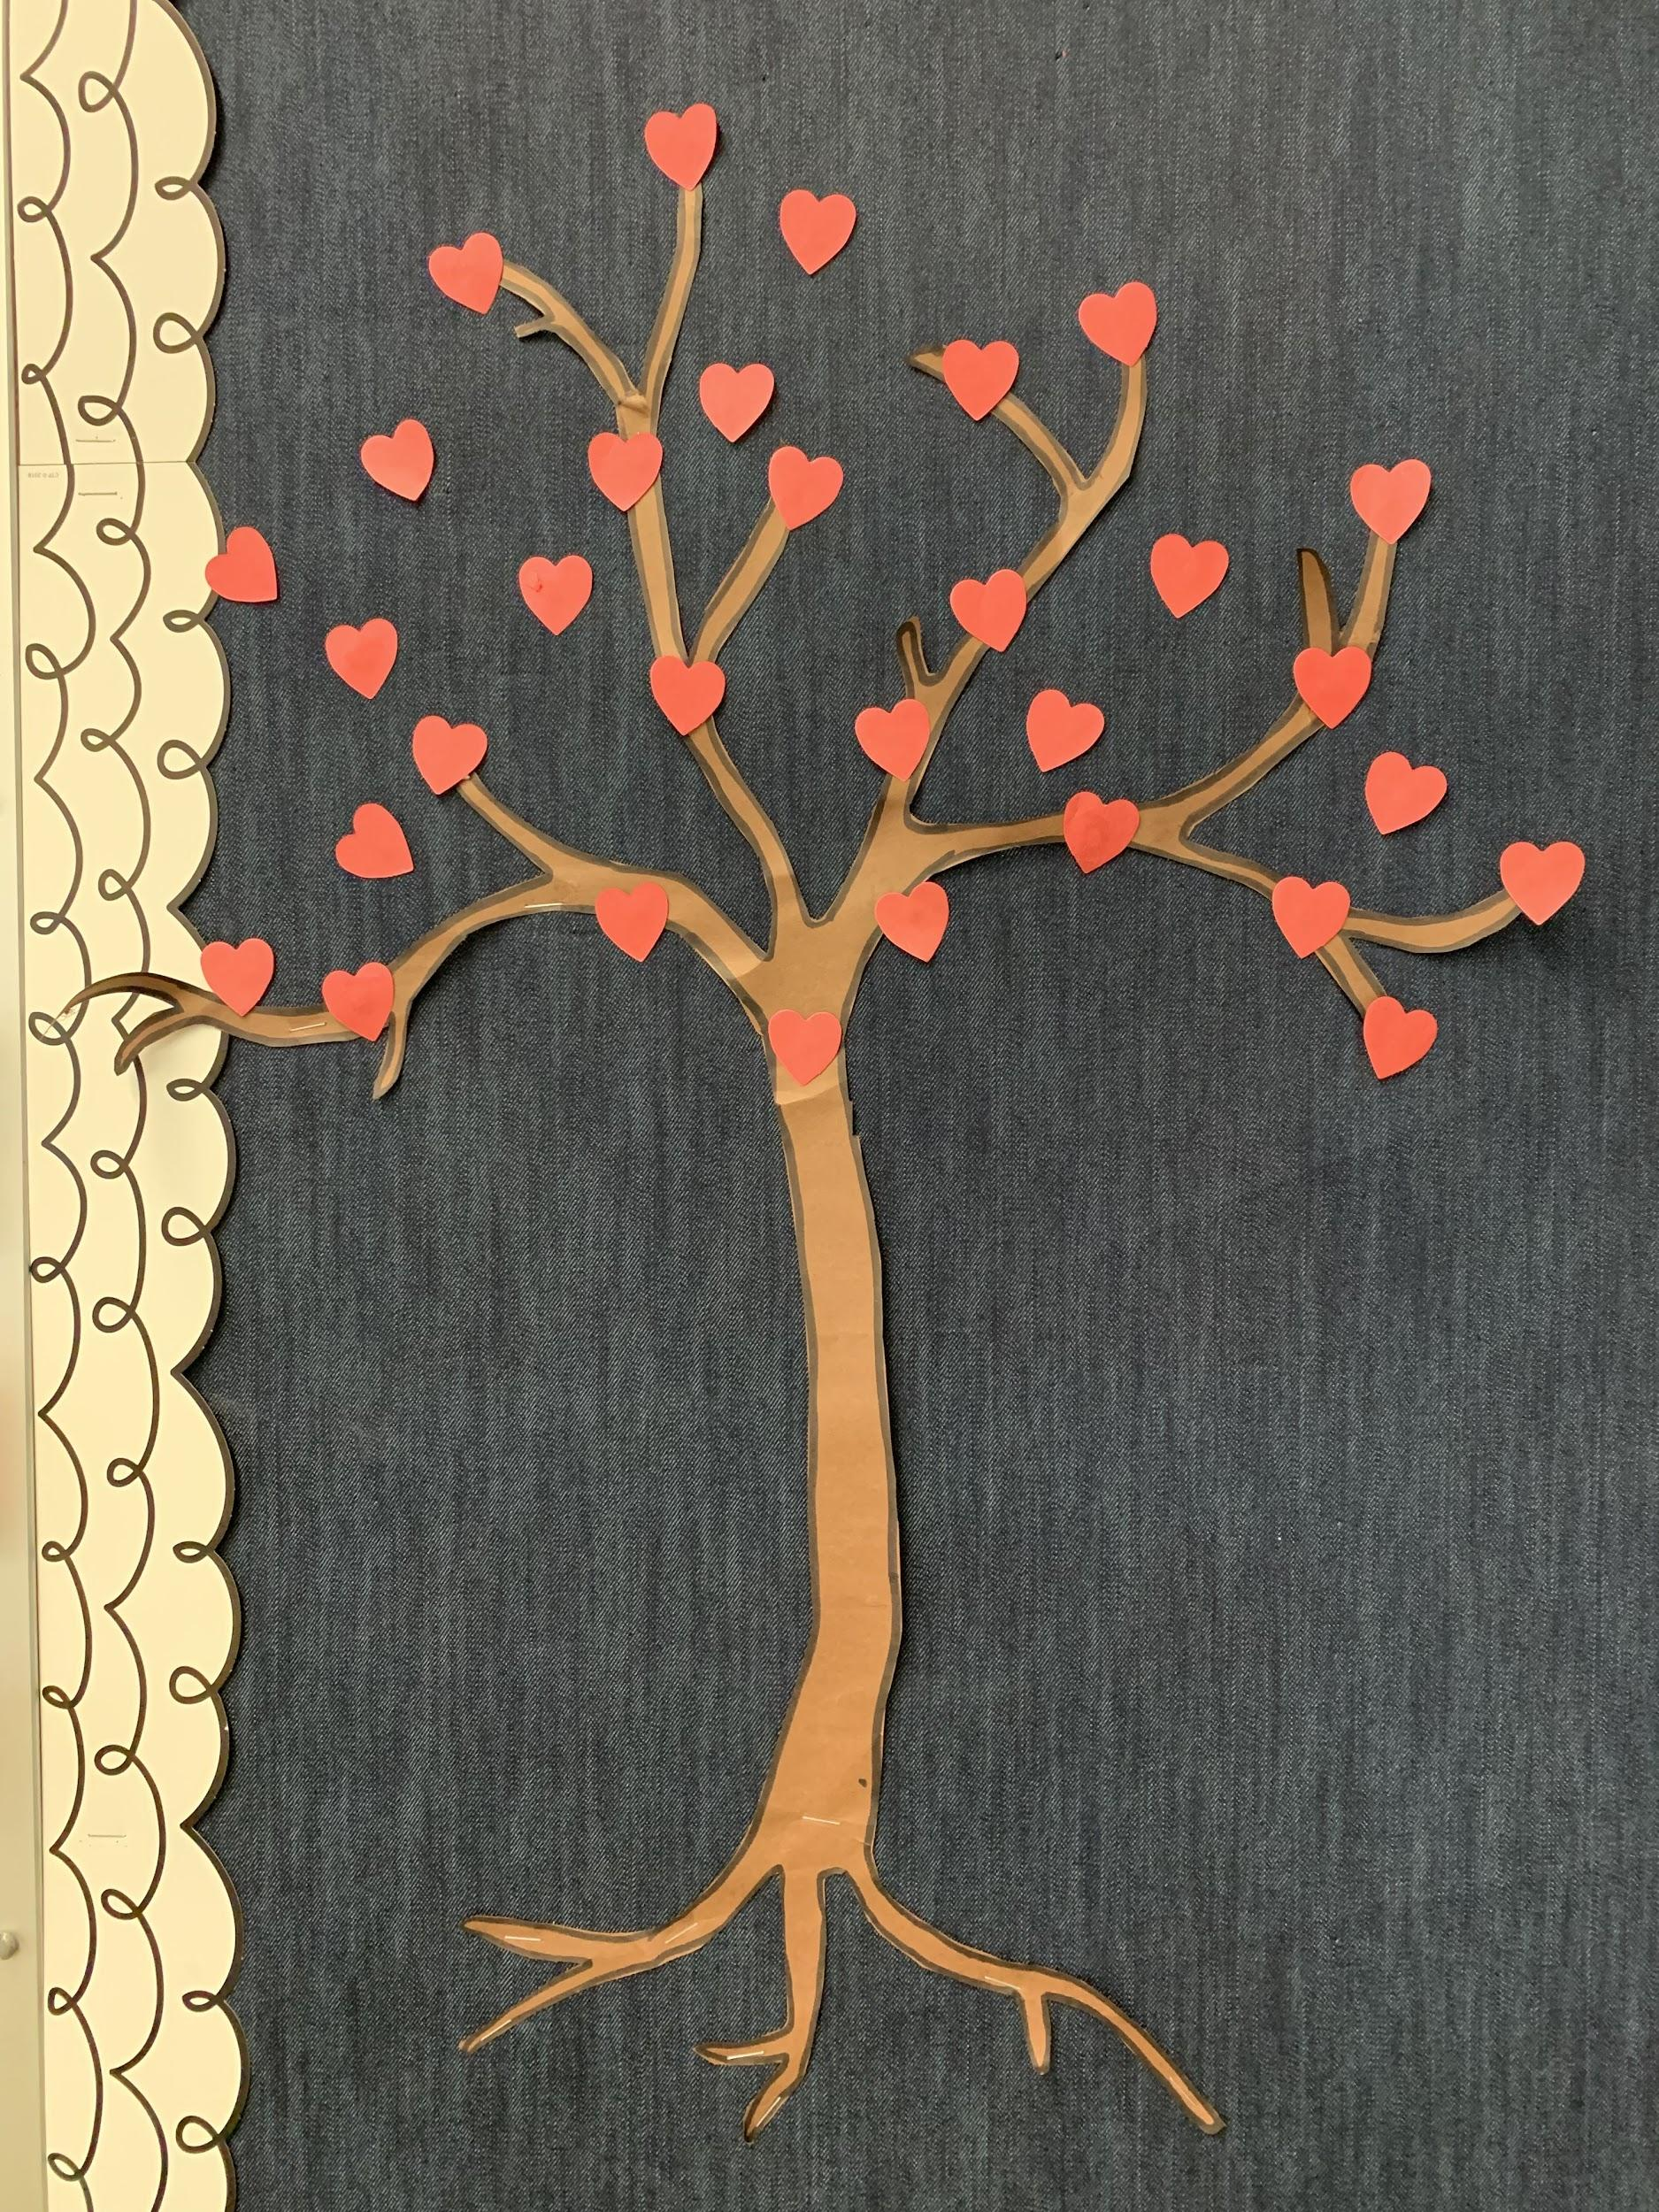 Kindness Tree with heart-shaped leaves